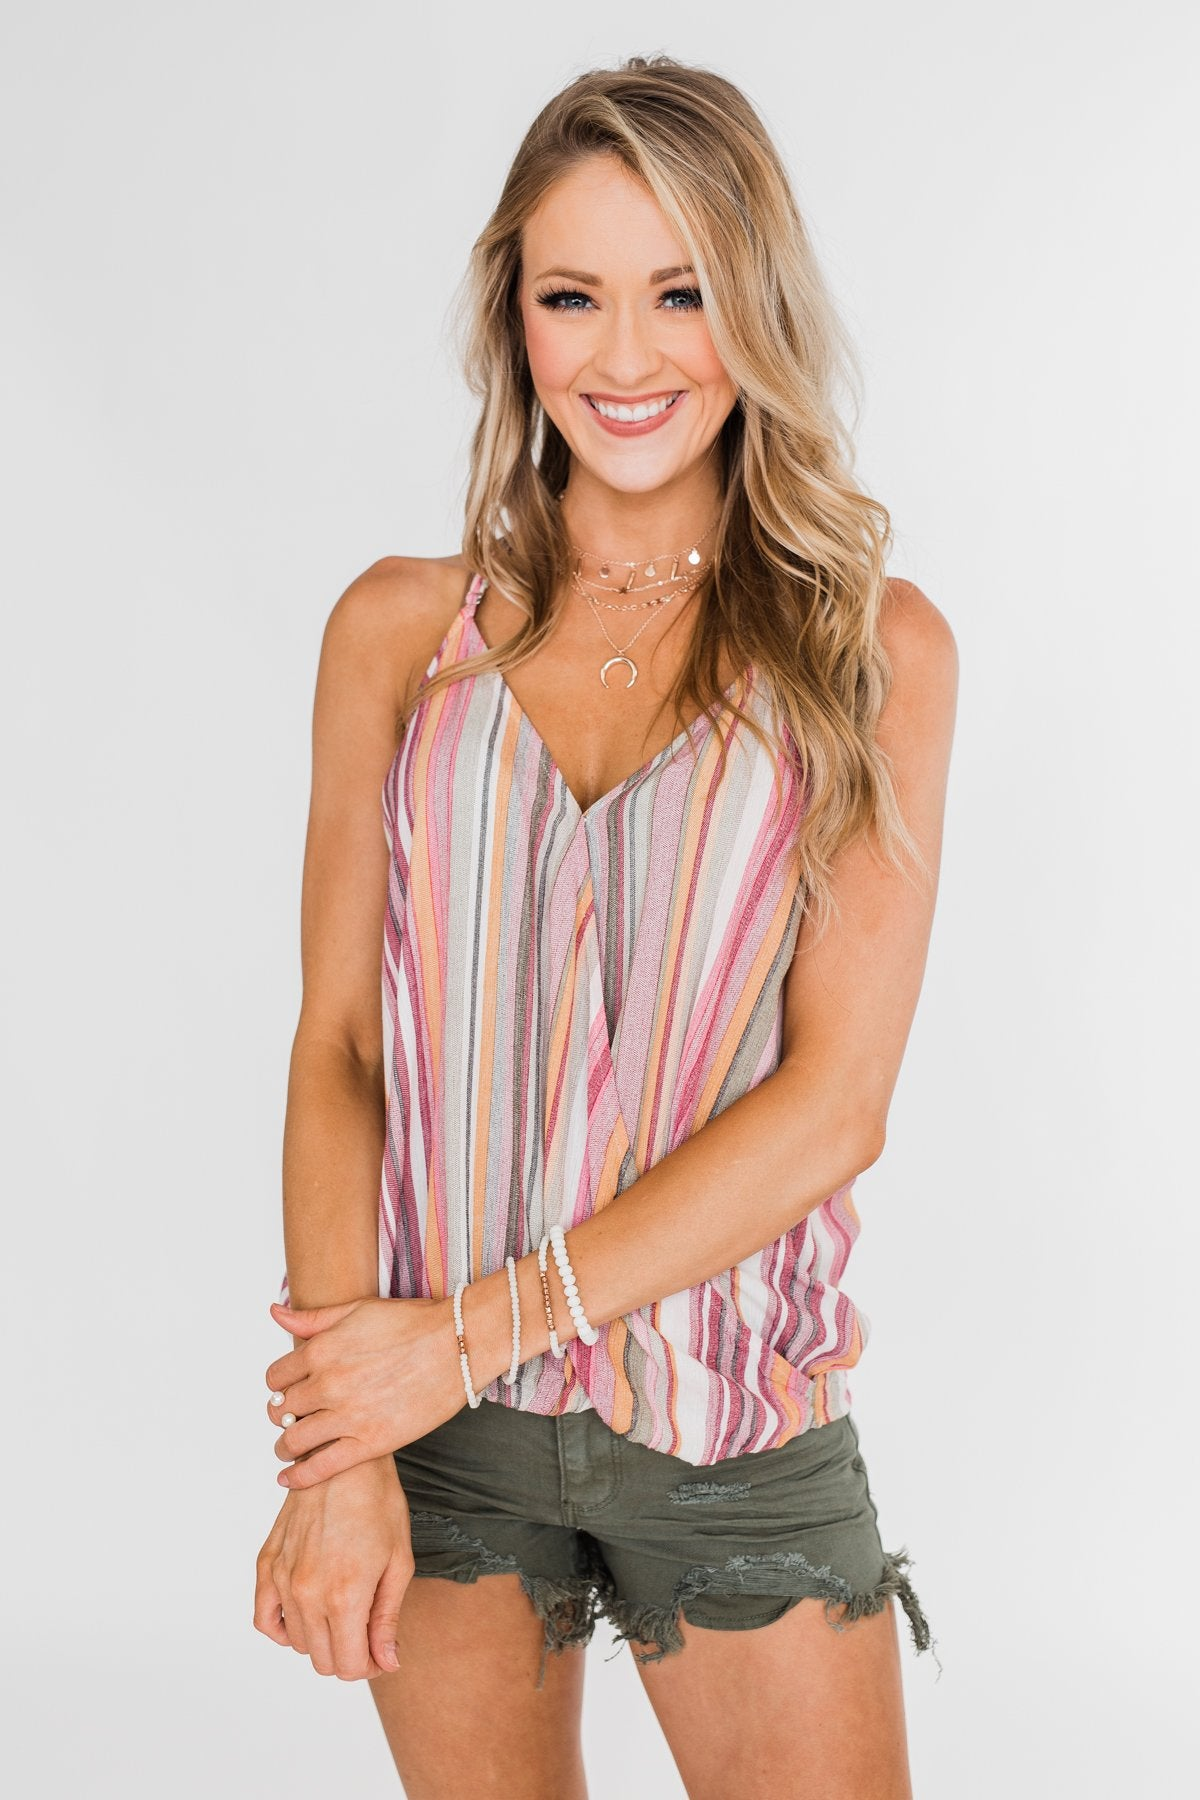 Dance With Me Geo Pattern Tank Top- Navy & Pink